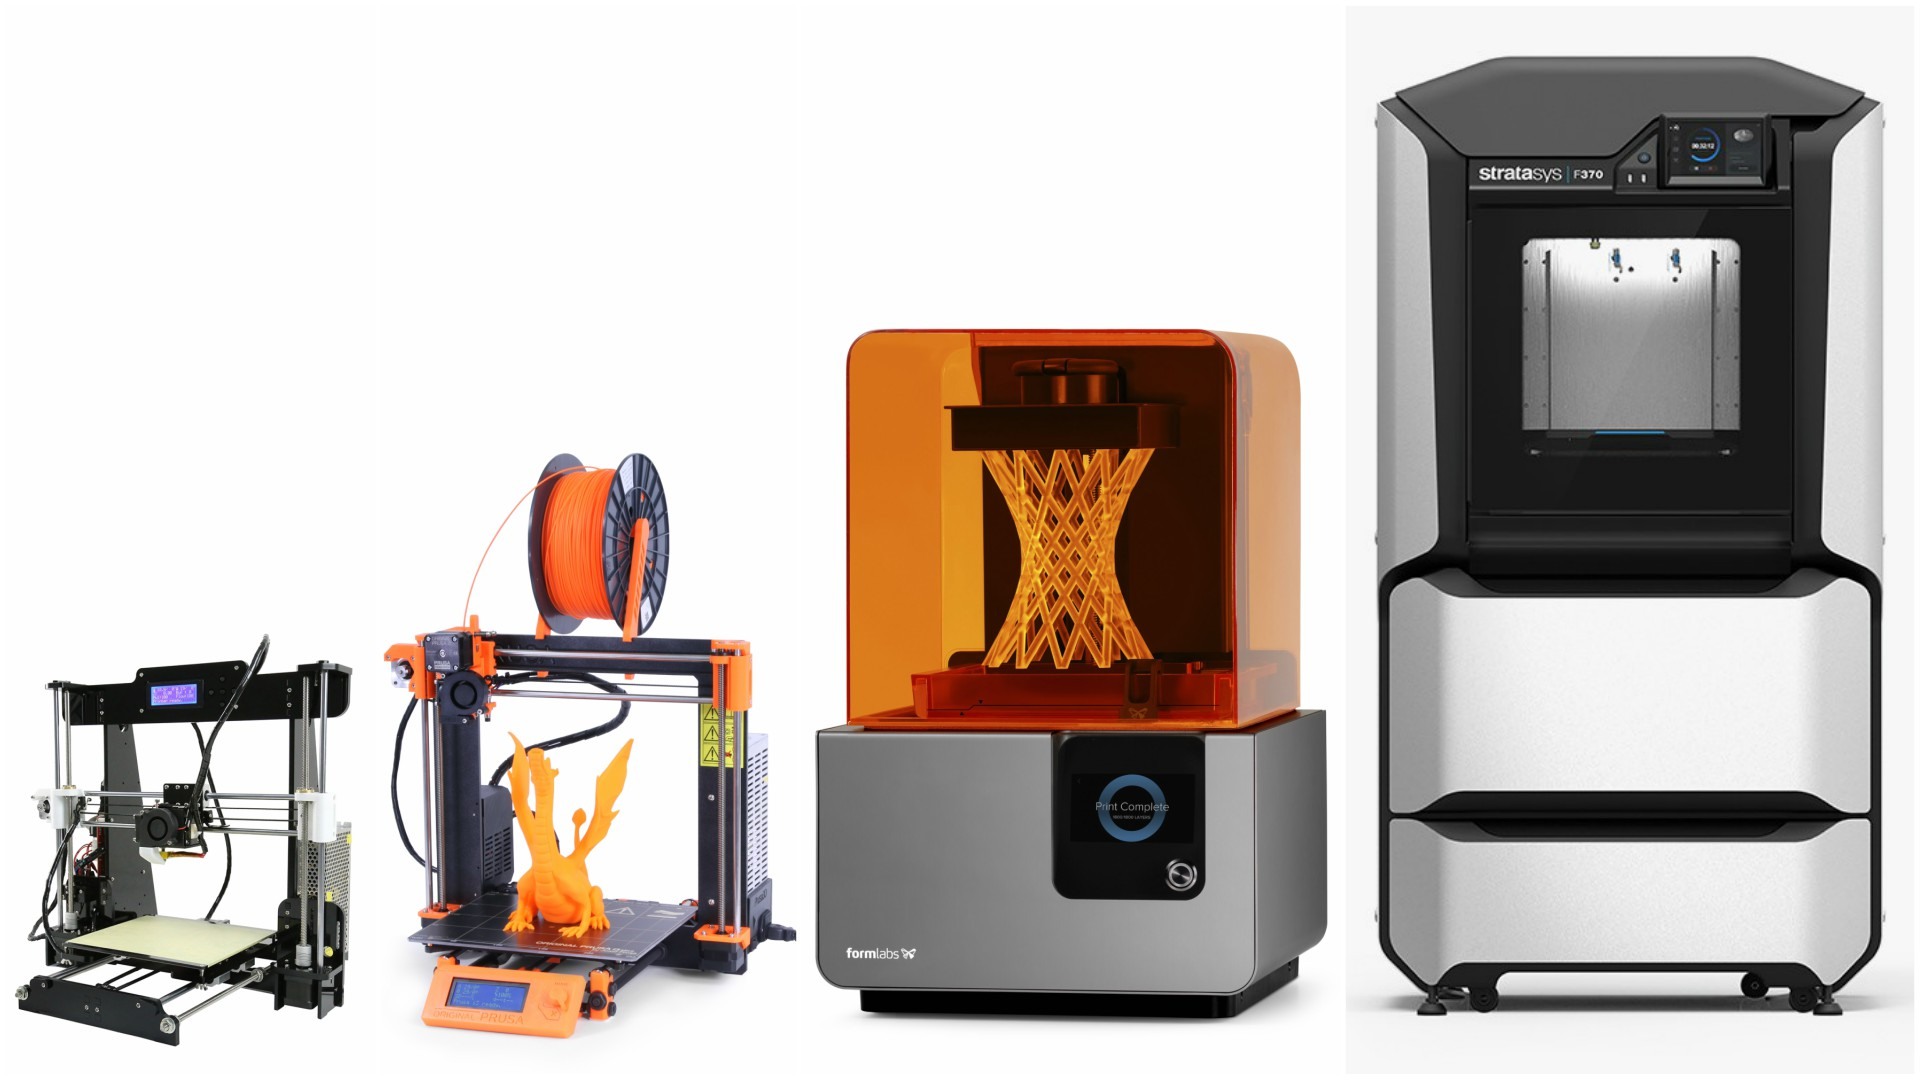 Diy 3d Printer Dlp 3d Printer Prices How Much Does A 3d Printer Cost In